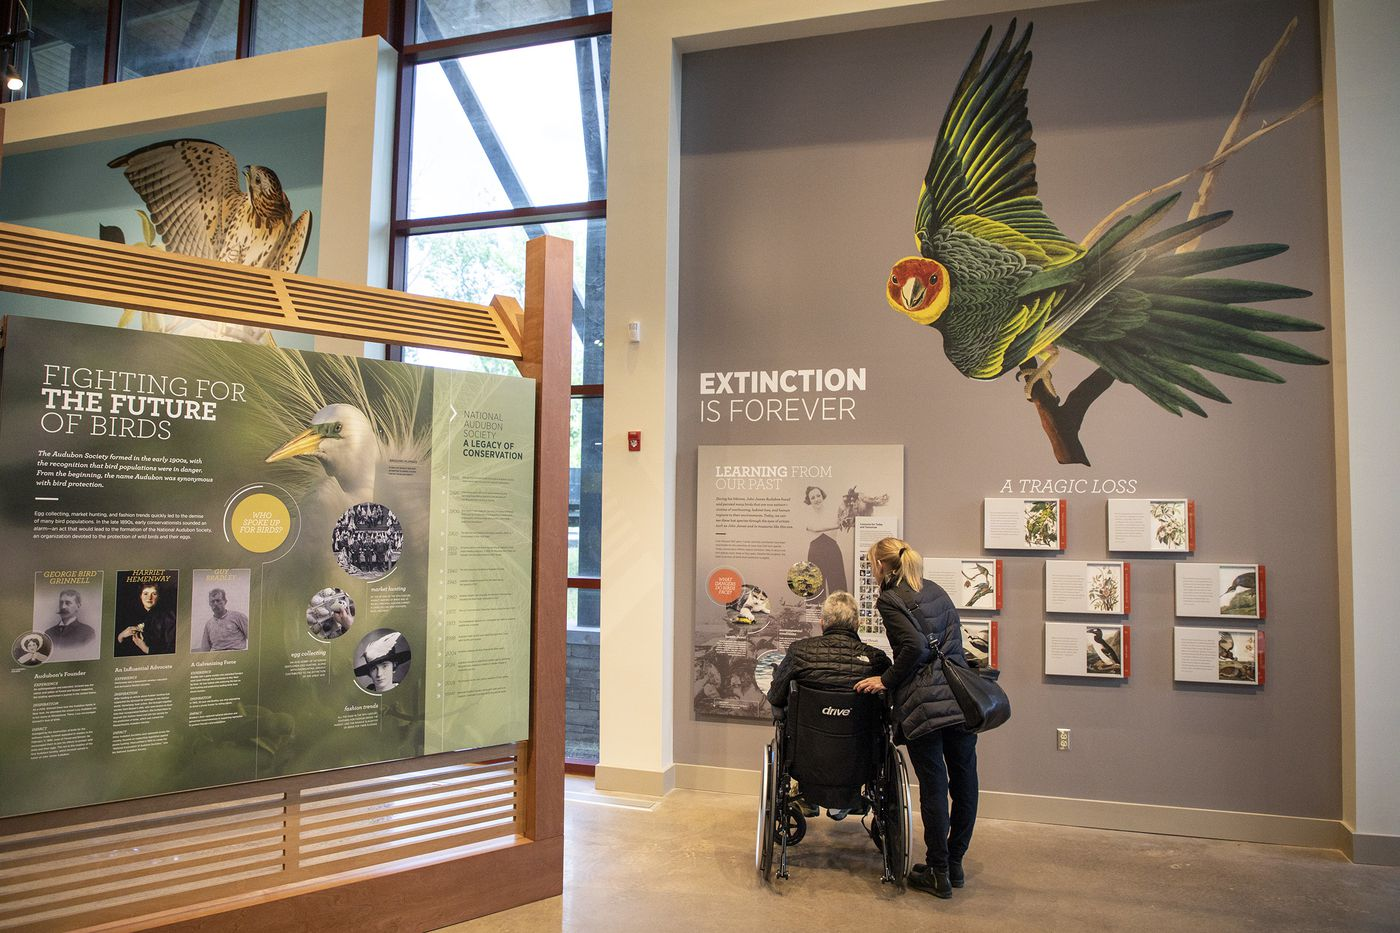 New Audubon Center resembles a bird in flight and aims to be ... on house wren house plans, purple martin house plans, pvc bluebird house plans, national wildlife bird house plans,